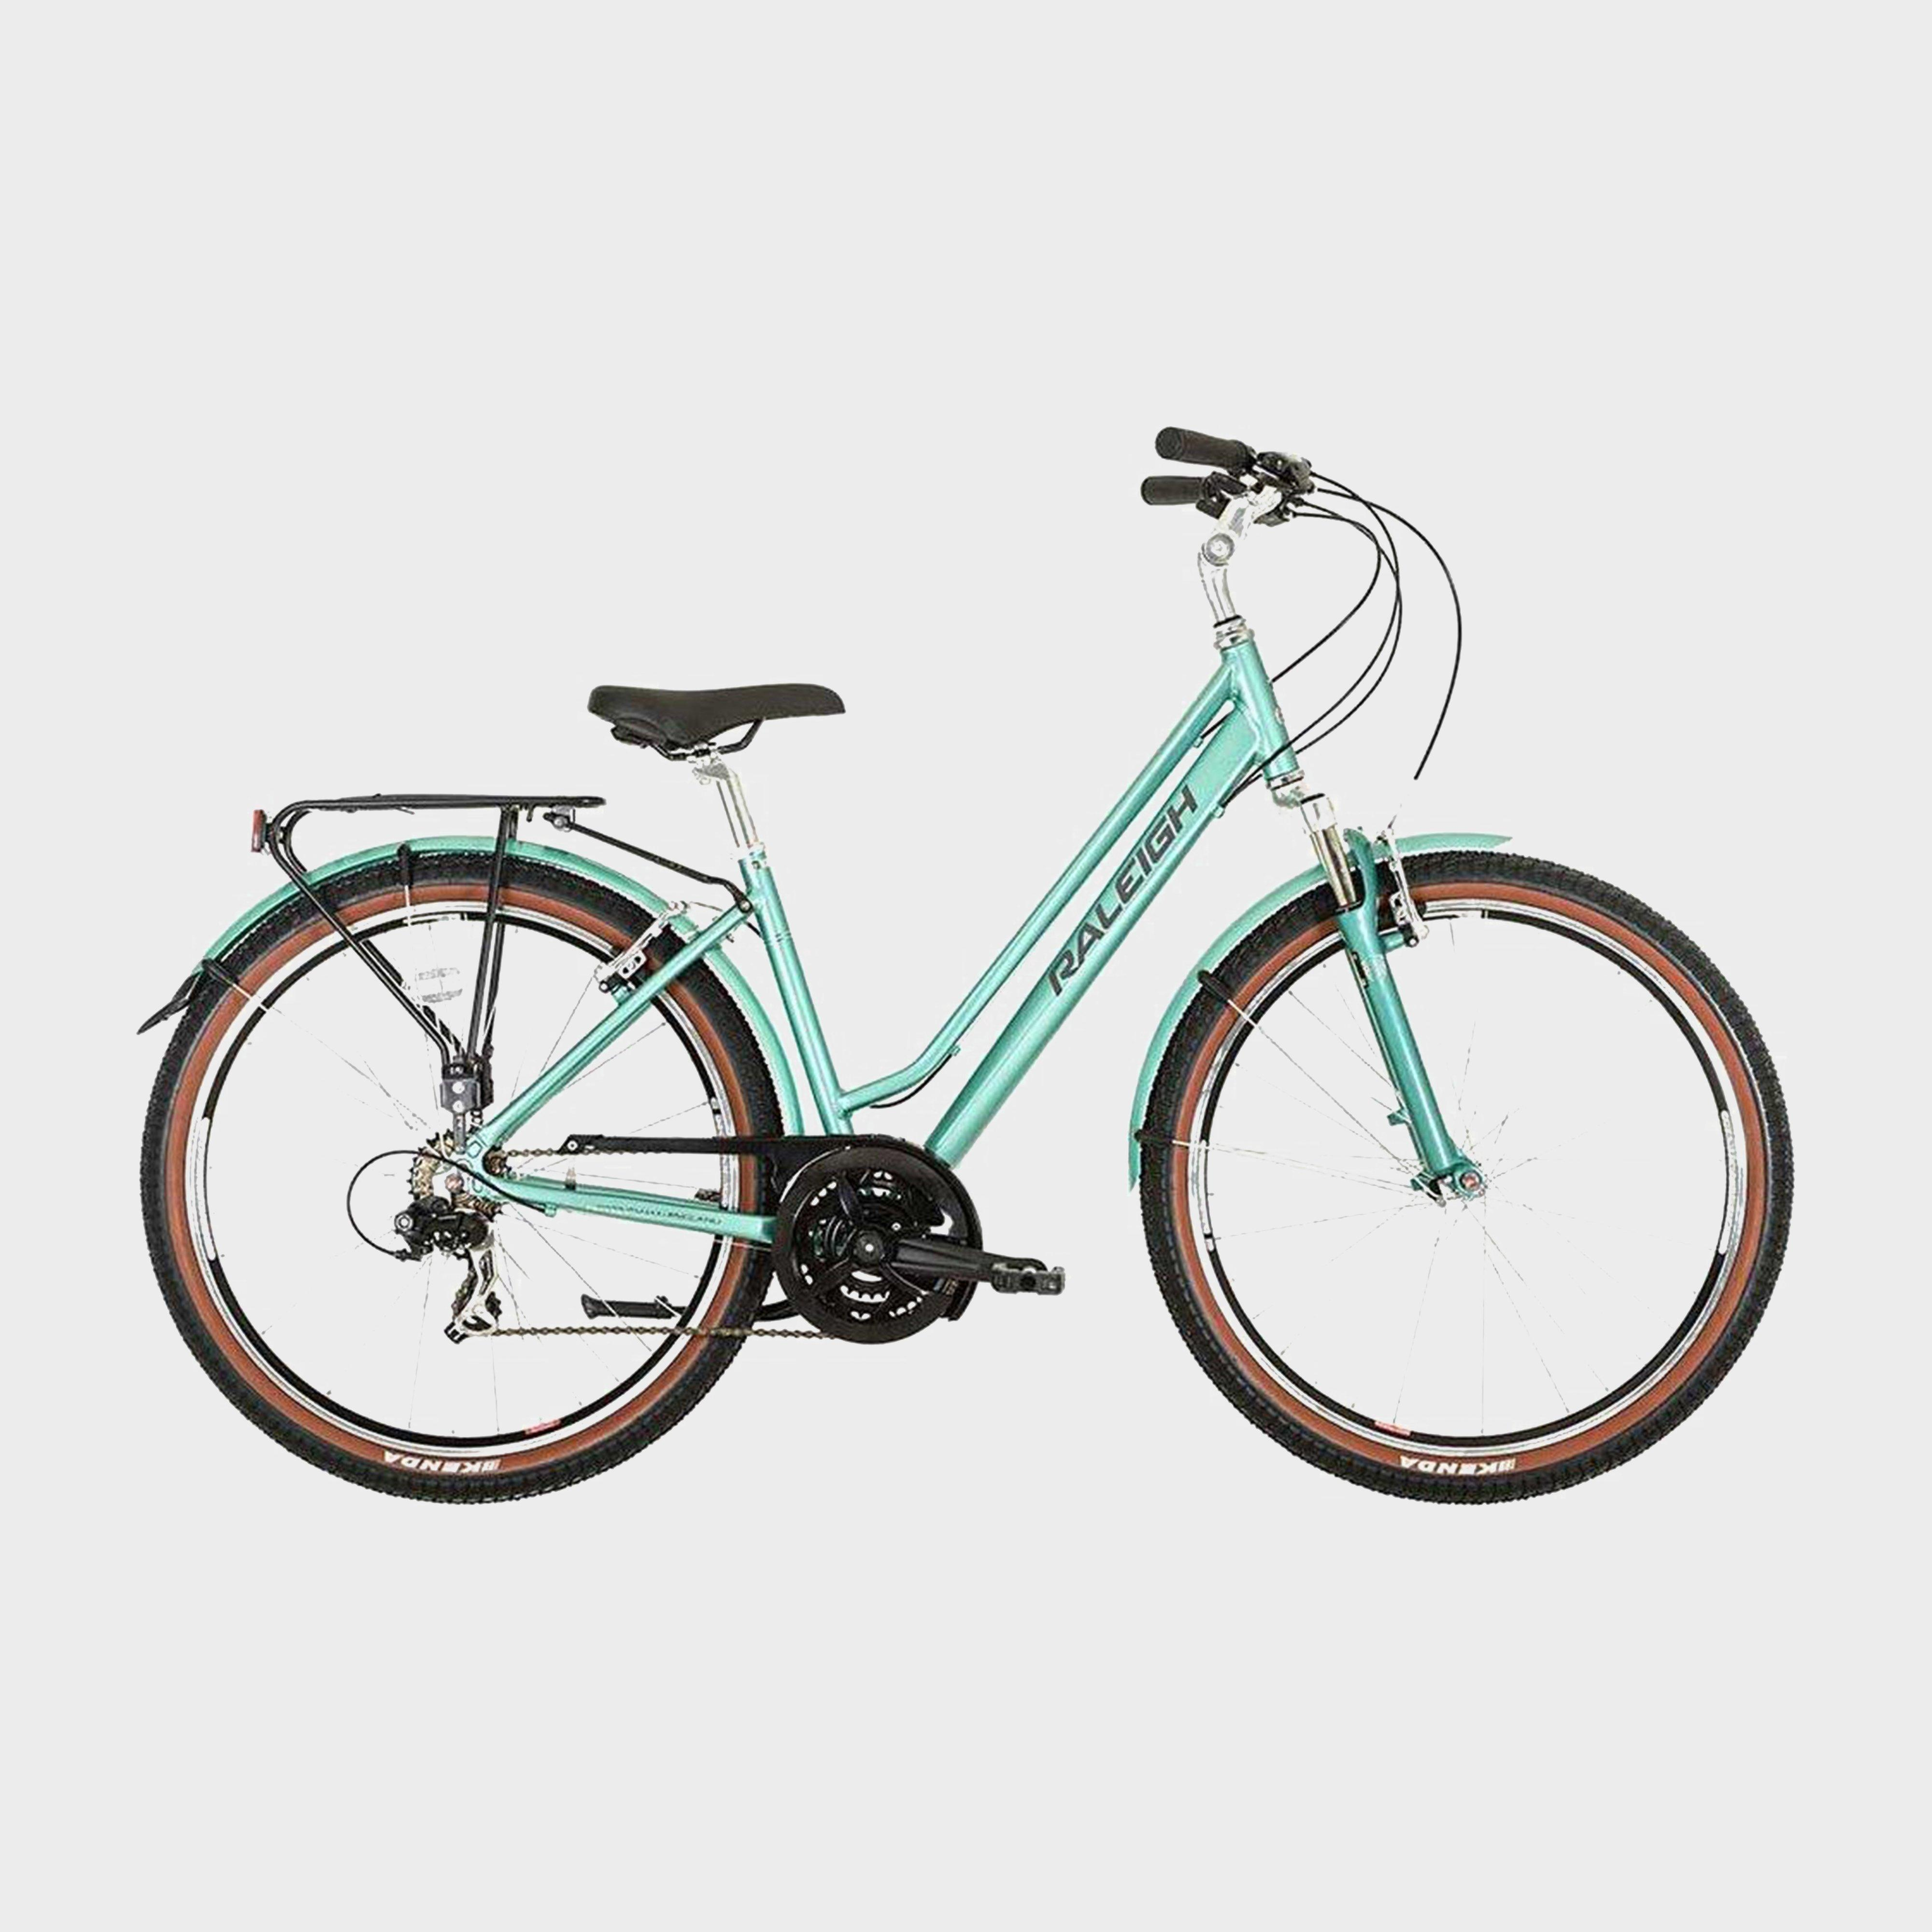 RALEIGH Pioneer Trail Low Step Frame Commuter Bike, TURQUOISE/LADIES